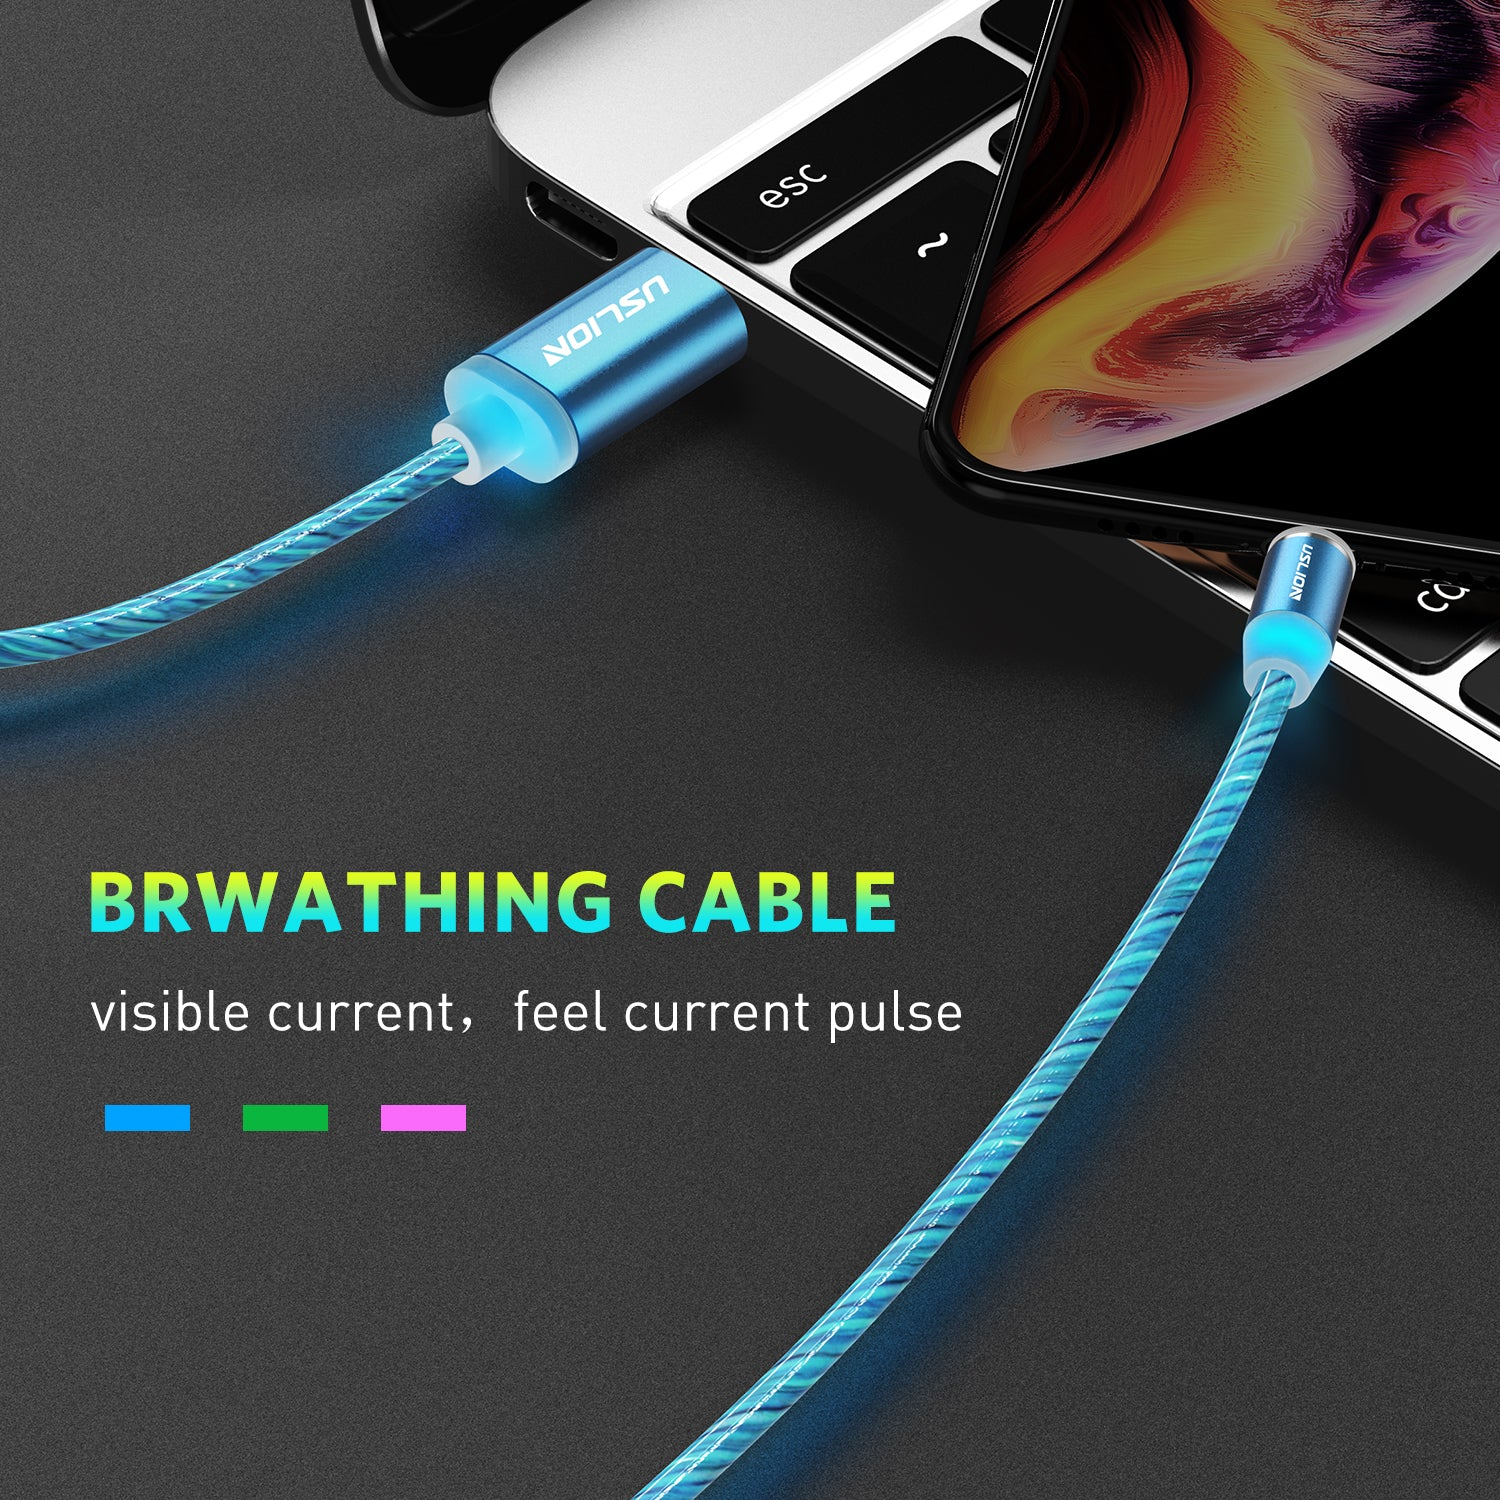 Uslion LED Magnetic Cable 3 in 1 USB Charging Cables Light